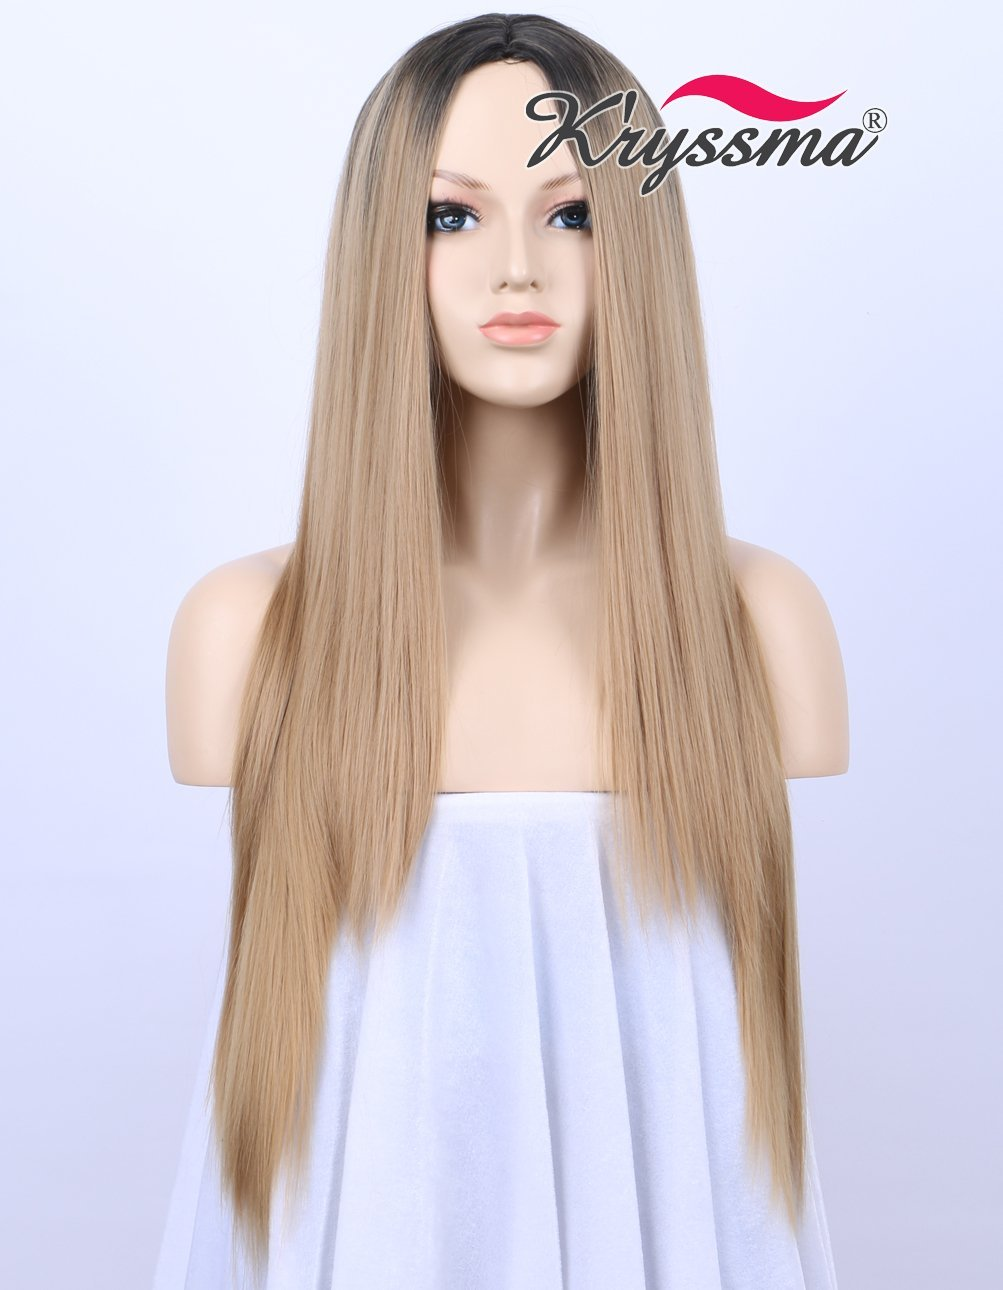 K ryssma Long Straight Honey Blonde Wig - Ombre 2 Tones Black Roots to  Blonde 6714c8d2c2